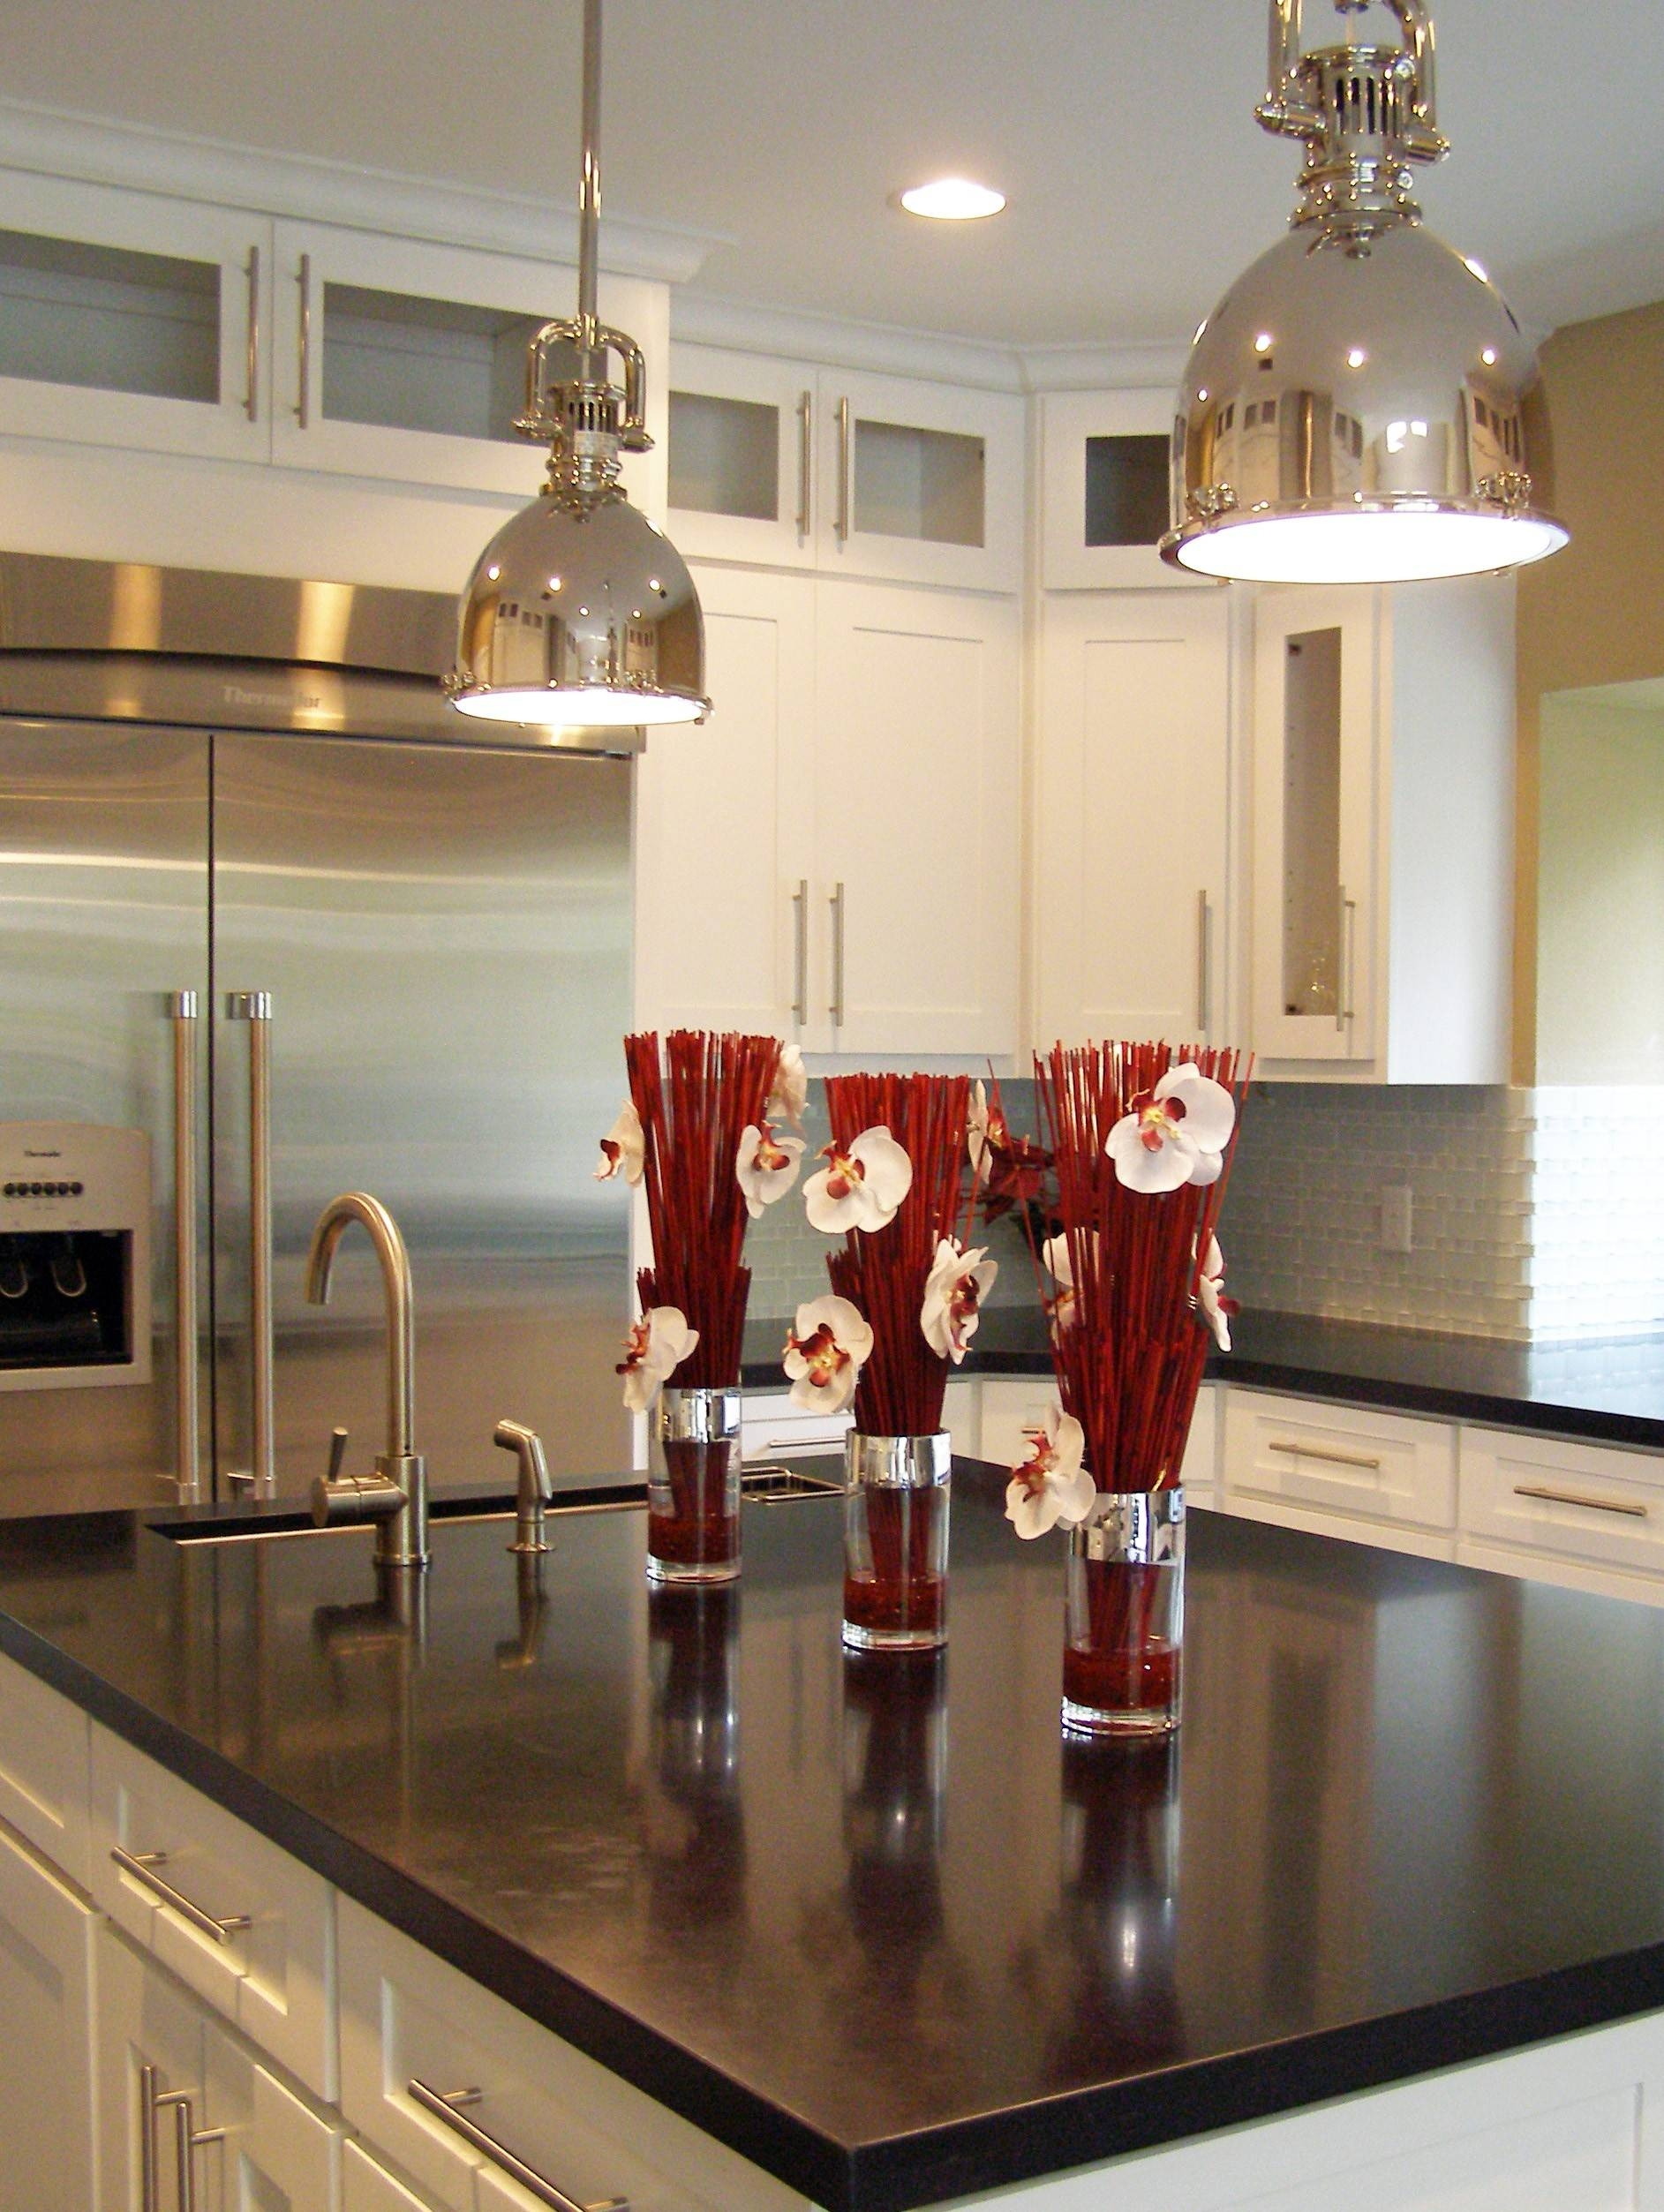 Furniture Appealing Pendant Lights For Kitchen Islands Wooden Intended For Stainless Steel Pendant Lights For Kitchen (View 1 of 15)